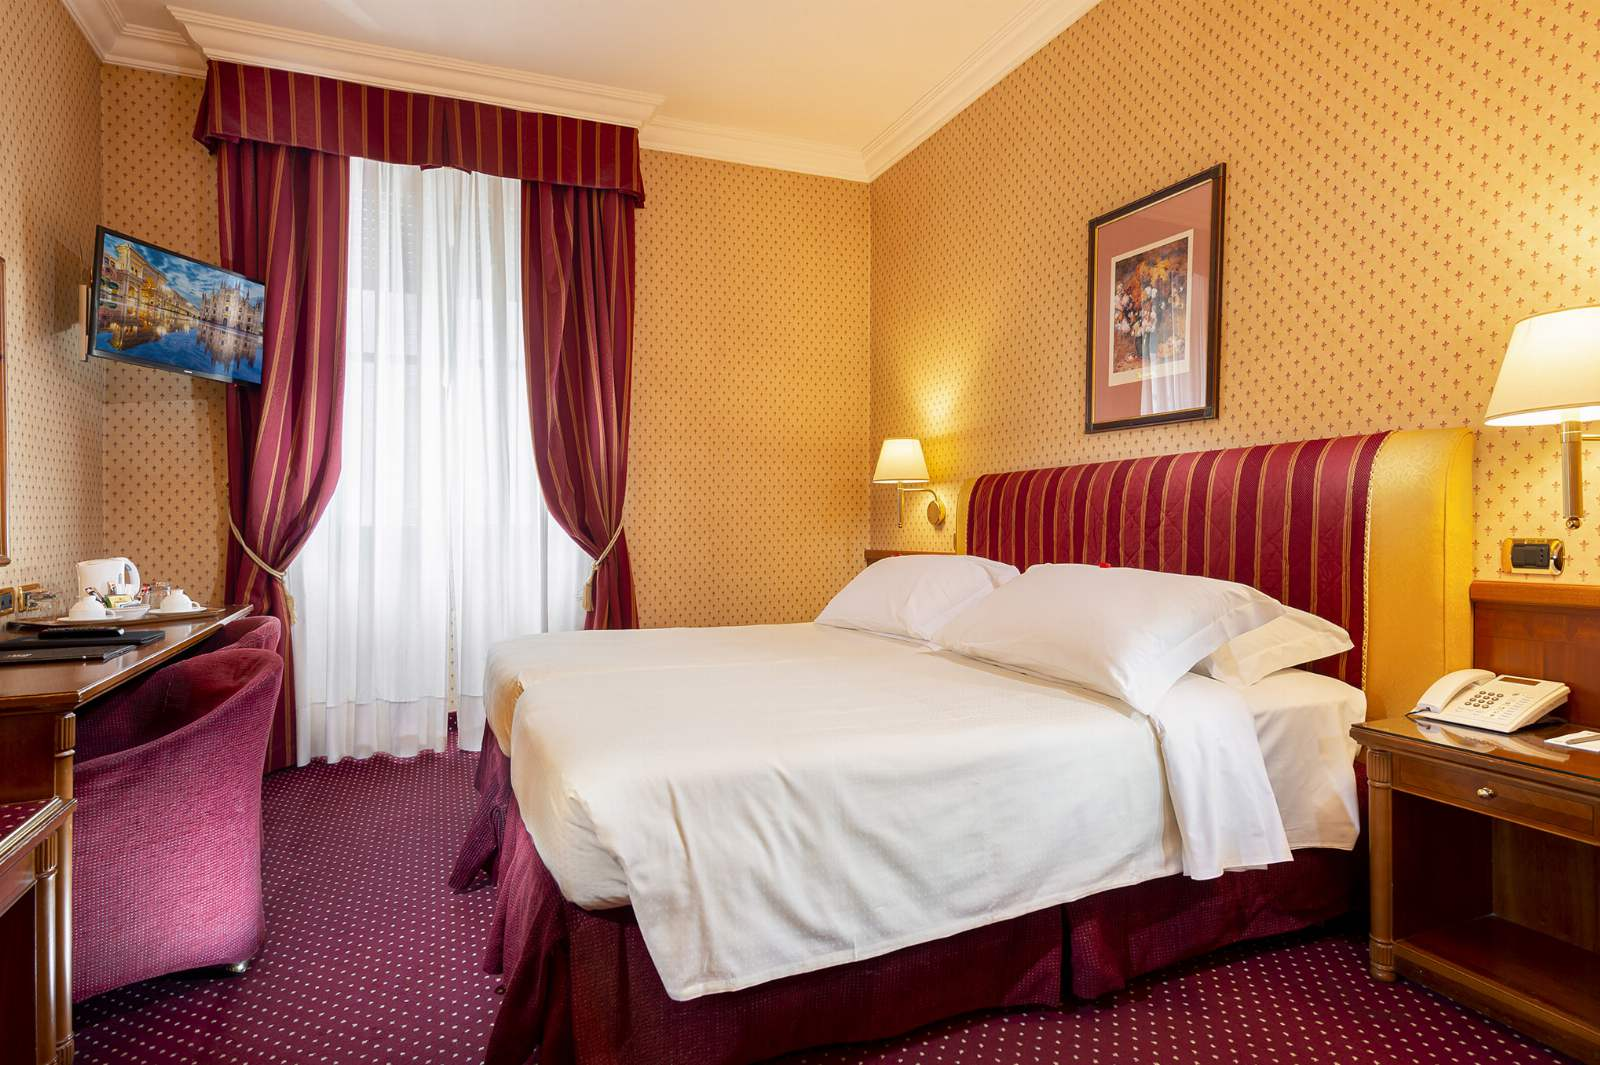 Hotel Berna: room / property / locale photo. Image 1